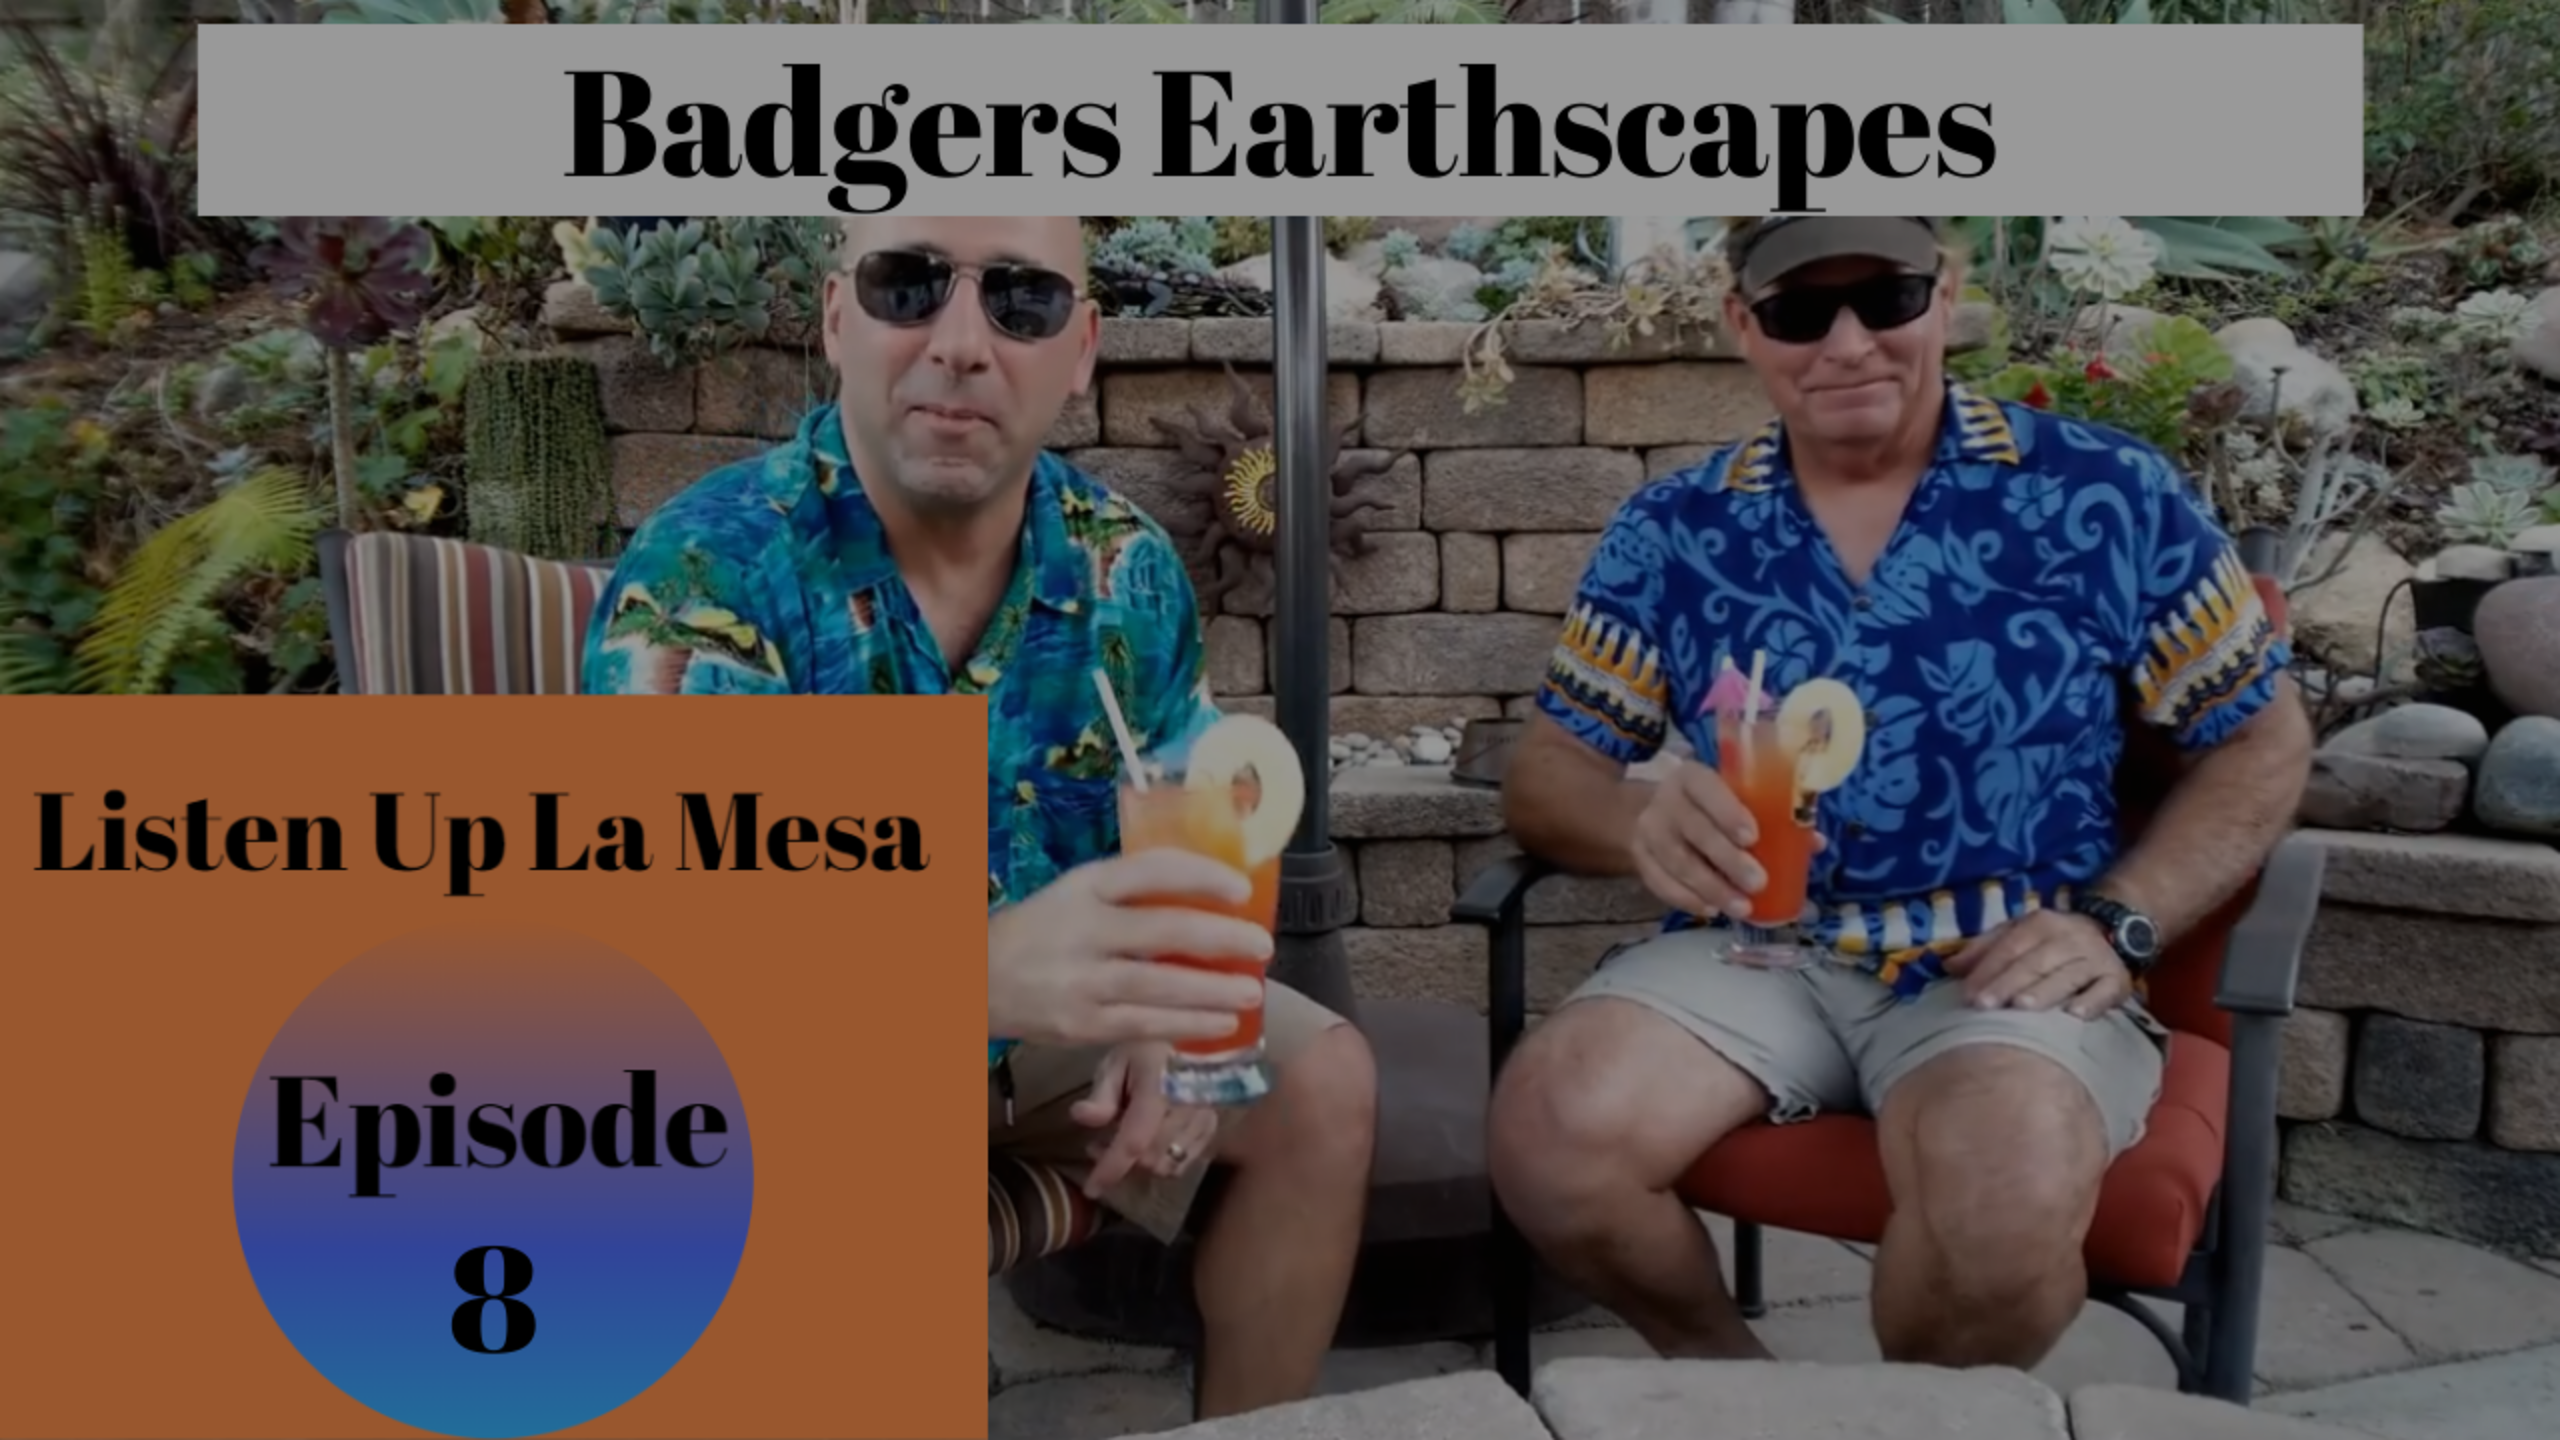 Landscaper In San Diego Ep: 8 Listen Up La Mesa – Badgers Earthscapes